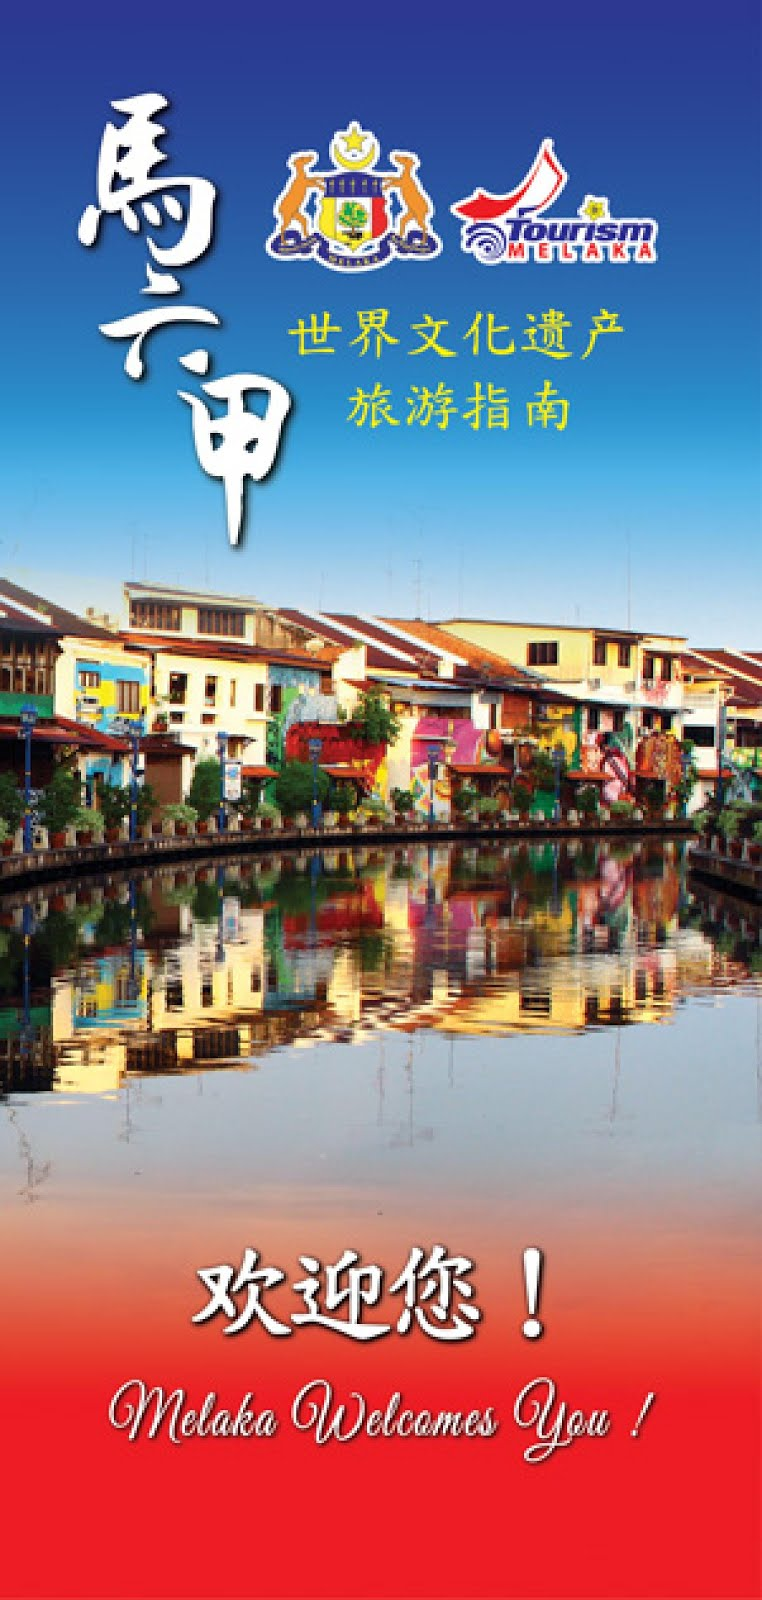 MELAKA TOURISM 12 SUBSECTORS - CHINESE VERSION